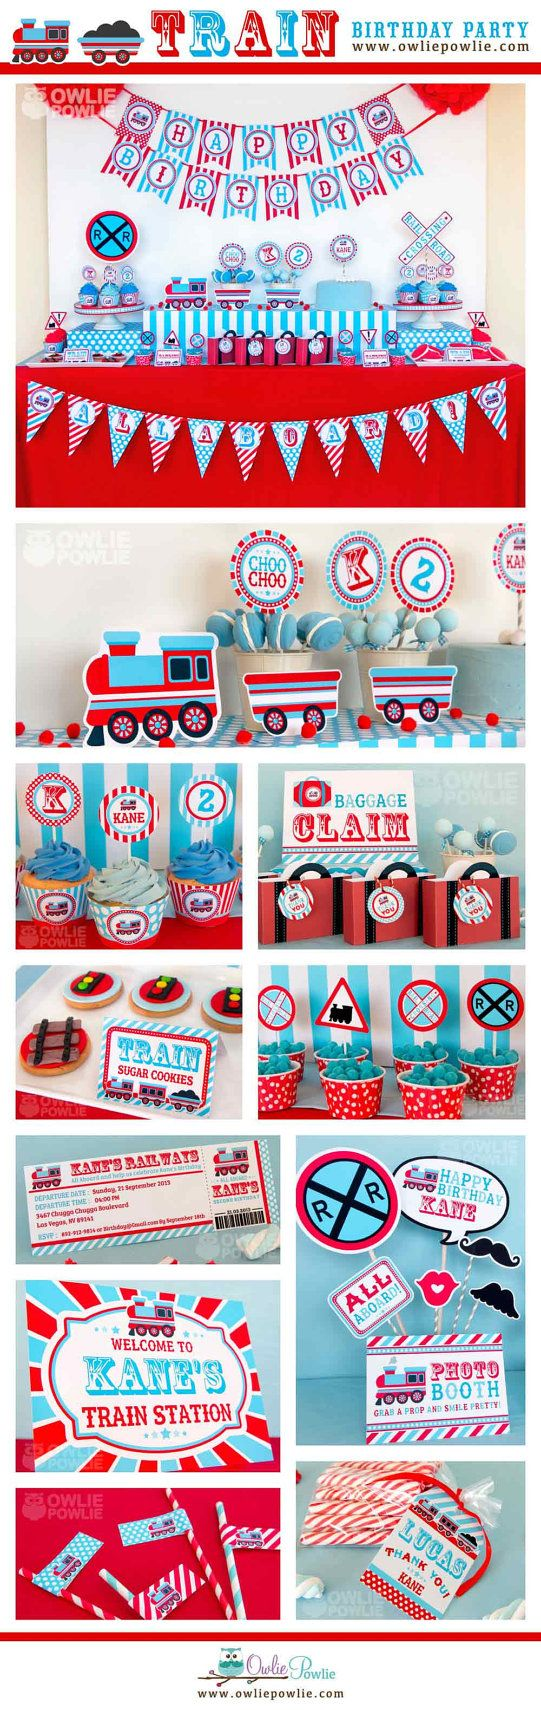 Train BIRTHDAY Party Printable Package & Invitation por OwliePowlie